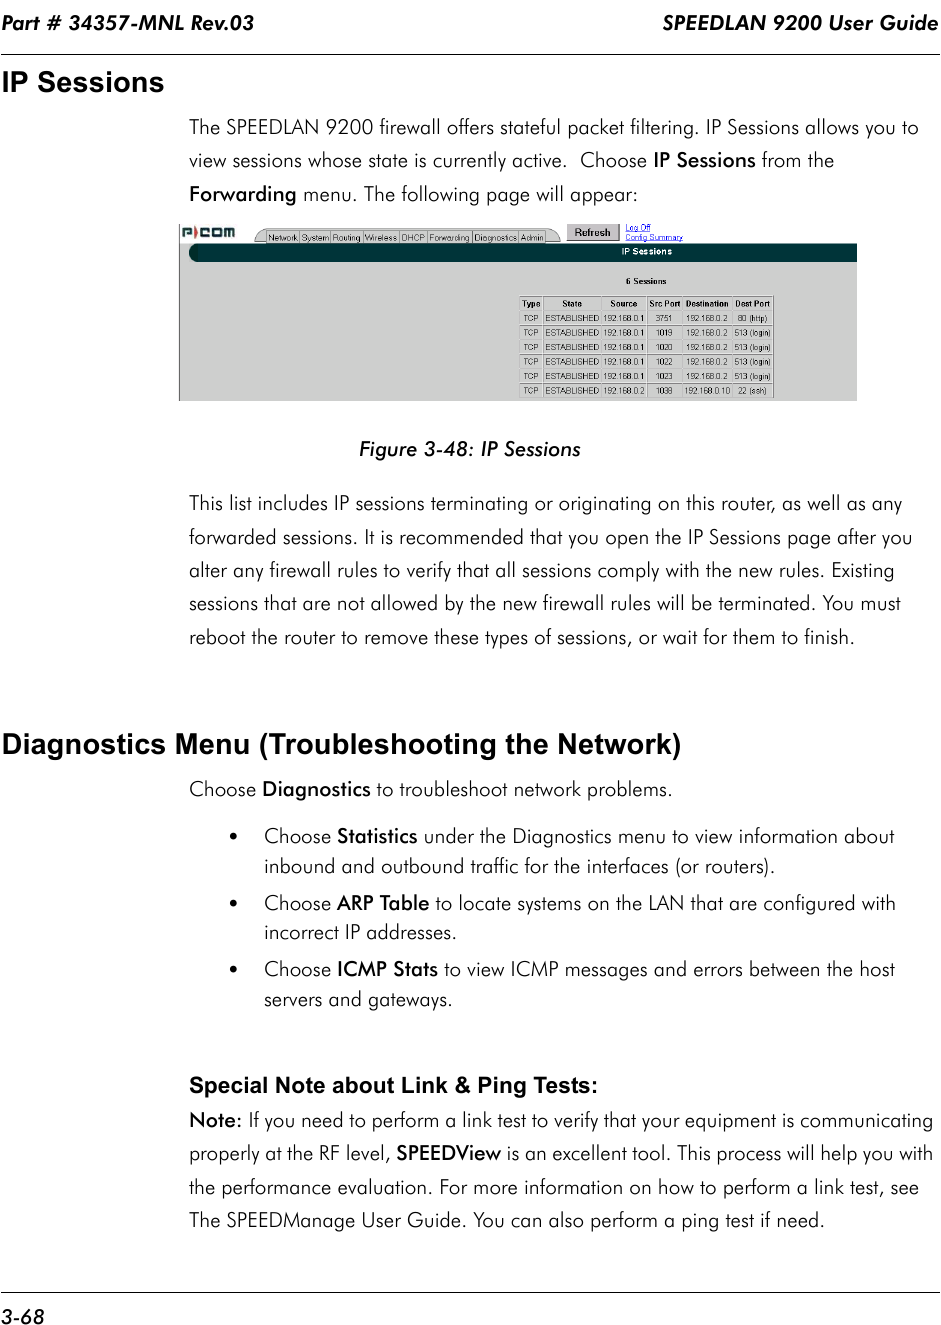 Part # 34357-MNL Rev.03                                                                   SPEEDLAN 9200 User Guide 3-68IP SessionsThe SPEEDLAN 9200 firewall offers stateful packet filtering. IP Sessions allows you to view sessions whose state is currently active.  Choose IP Sessions from the Forwarding menu. The following page will appear:Figure 3-48: IP SessionsThis list includes IP sessions terminating or originating on this router, as well as any forwarded sessions. It is recommended that you open the IP Sessions page after you alter any firewall rules to verify that all sessions comply with the new rules. Existing sessions that are not allowed by the new firewall rules will be terminated. You must reboot the router to remove these types of sessions, or wait for them to finish. Diagnostics Menu (Troubleshooting the Network)Choose Diagnostics to troubleshoot network problems. •Choose Statistics under the Diagnostics menu to view information about inbound and outbound traffic for the interfaces (or routers). •Choose ARP Table to locate systems on the LAN that are configured with incorrect IP addresses.•Choose ICMP Stats to view ICMP messages and errors between the host servers and gateways. Special Note about Link & Ping Tests:Note: If you need to perform a link test to verify that your equipment is communicating properly at the RF level, SPEEDView is an excellent tool. This process will help you with the performance evaluation. For more information on how to perform a link test, see The SPEEDManage User Guide. You can also perform a ping test if need.